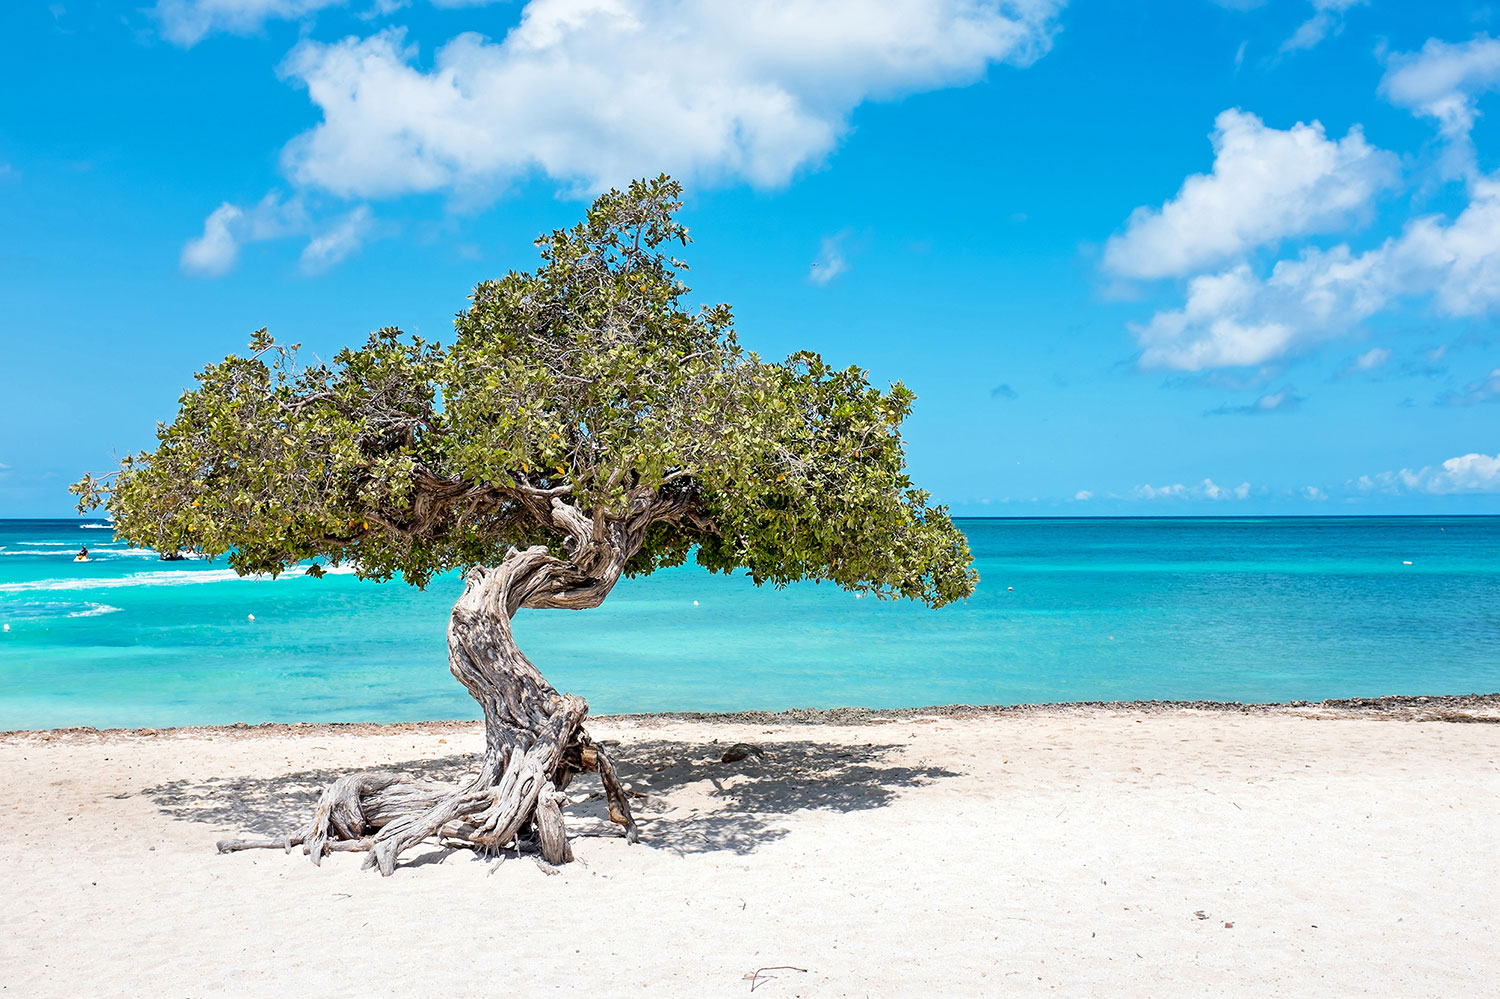 Tree with a curving trunk planted in the sand of a beach in Aruba